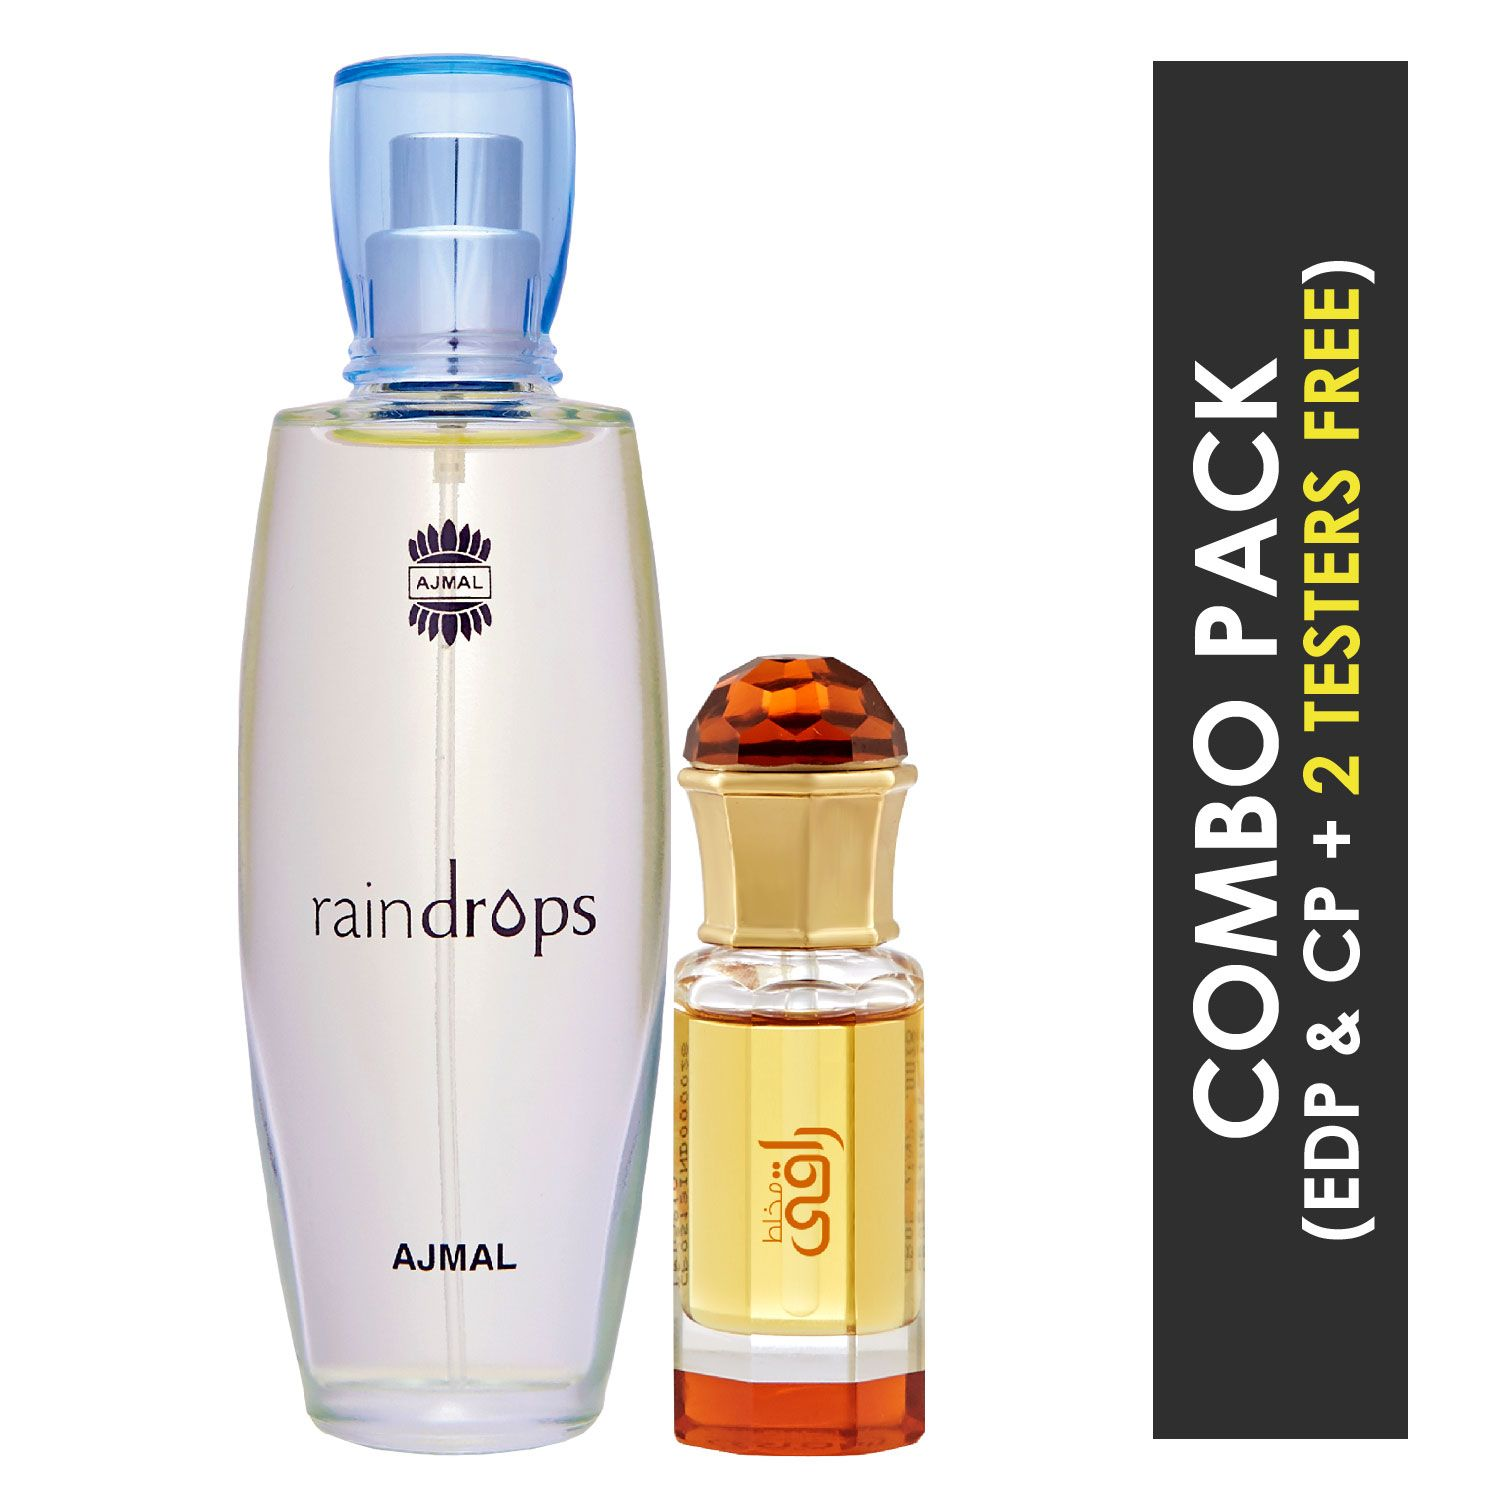 Ajmal | Ajmal Raindrops EDP Floral Chypre Perfume 50ml for Women and Mukhallat Raaqi Concentrated Perfume Oil Floral Fruity Alcohol-free Attar 10ml for Unisex + 2 Parfum Testers FREE